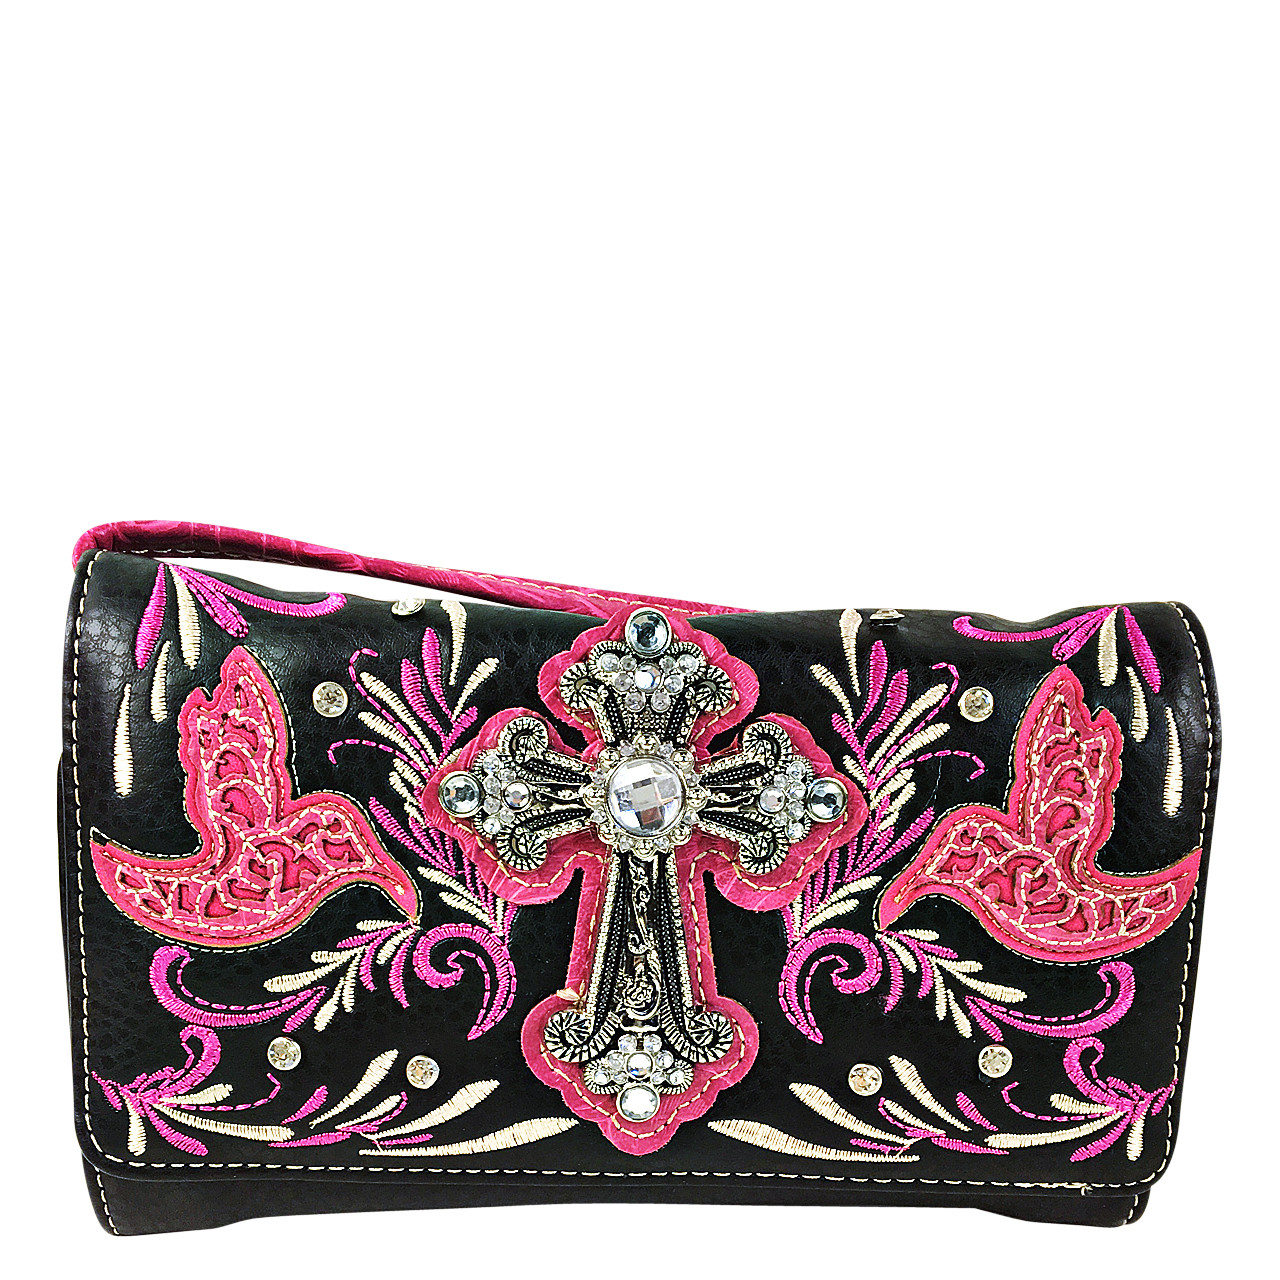 HOT PINK STUDDED RHINESTONE CROSS WITH STITCHED LOOK CLUTCH TRIFOLD WALLET